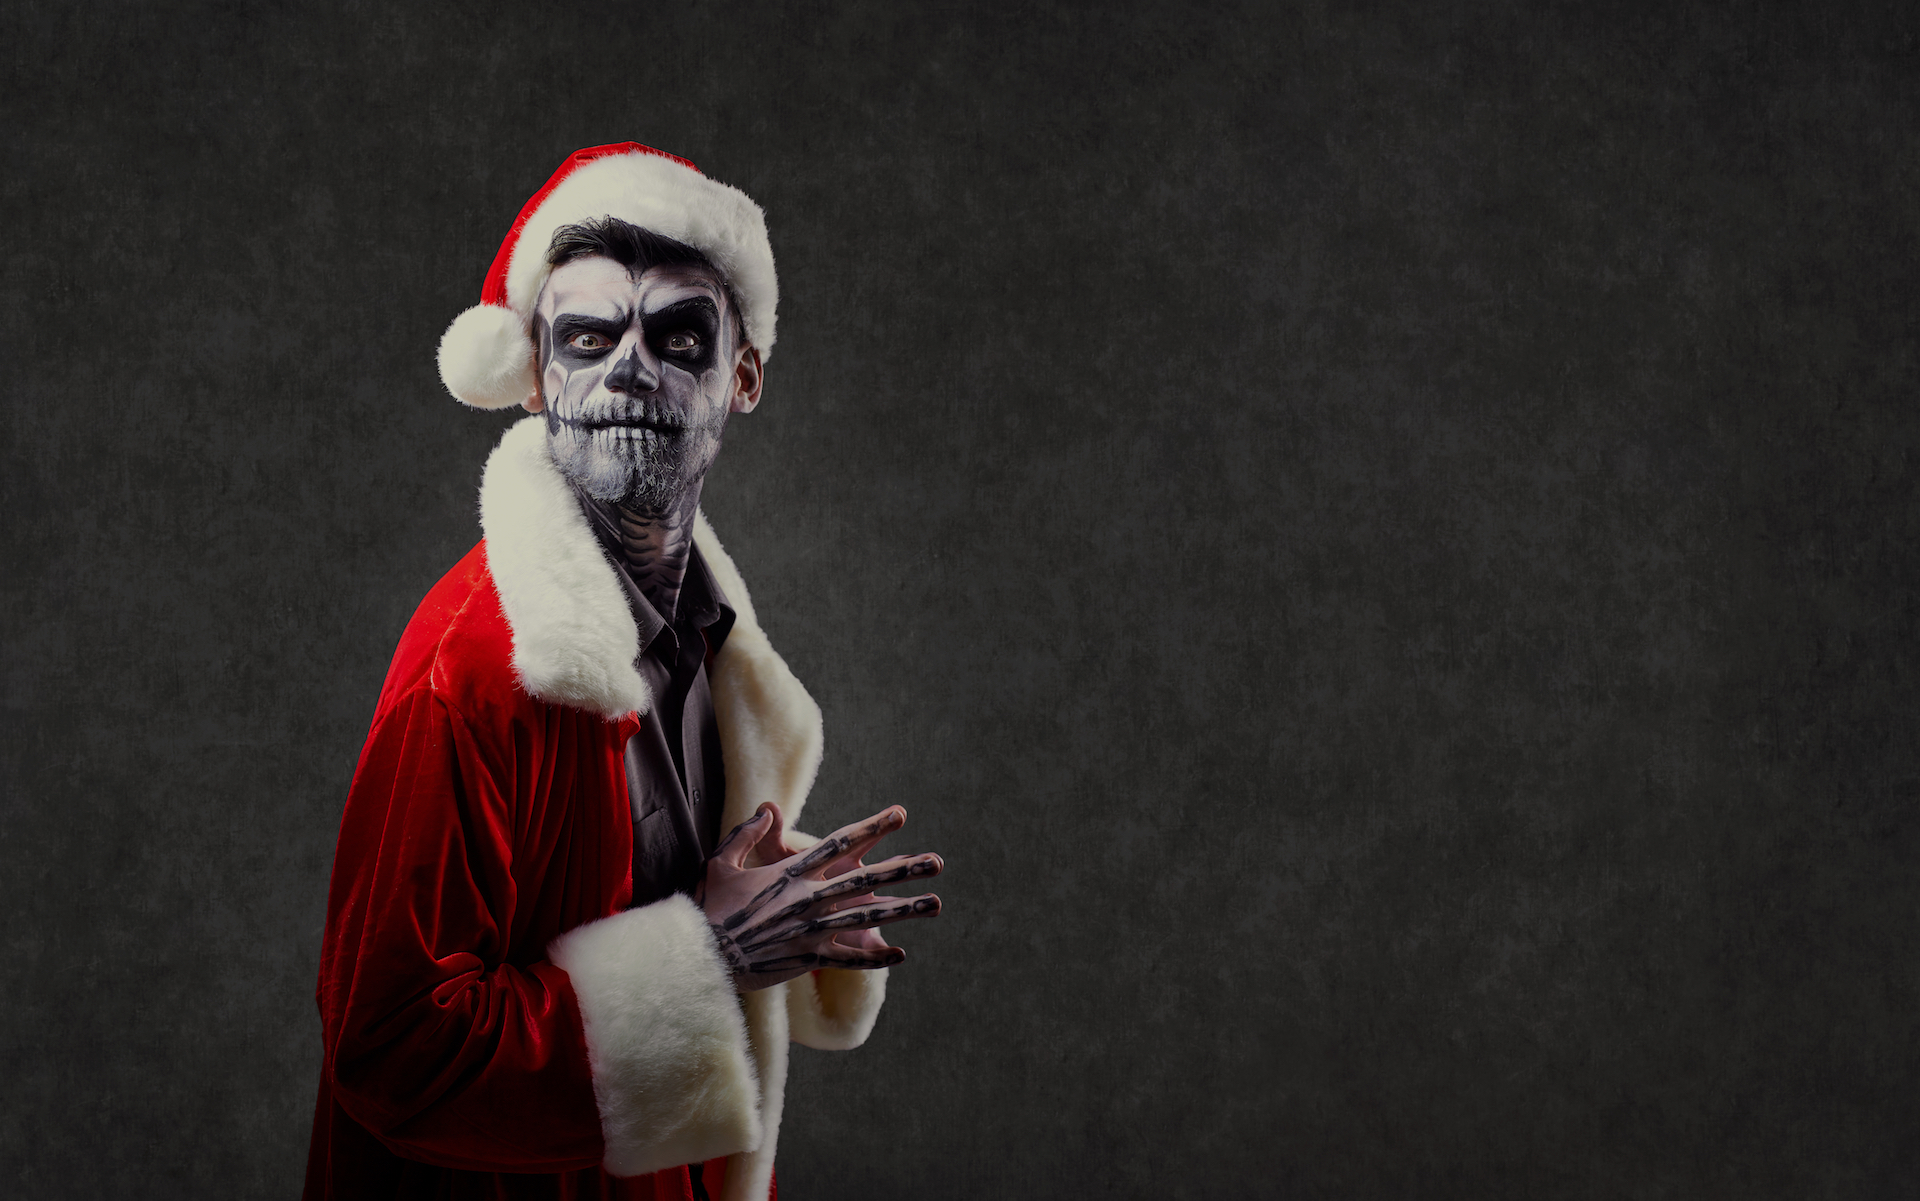 Man with skeleton makeup wearing a Santa suit and looking at the camera